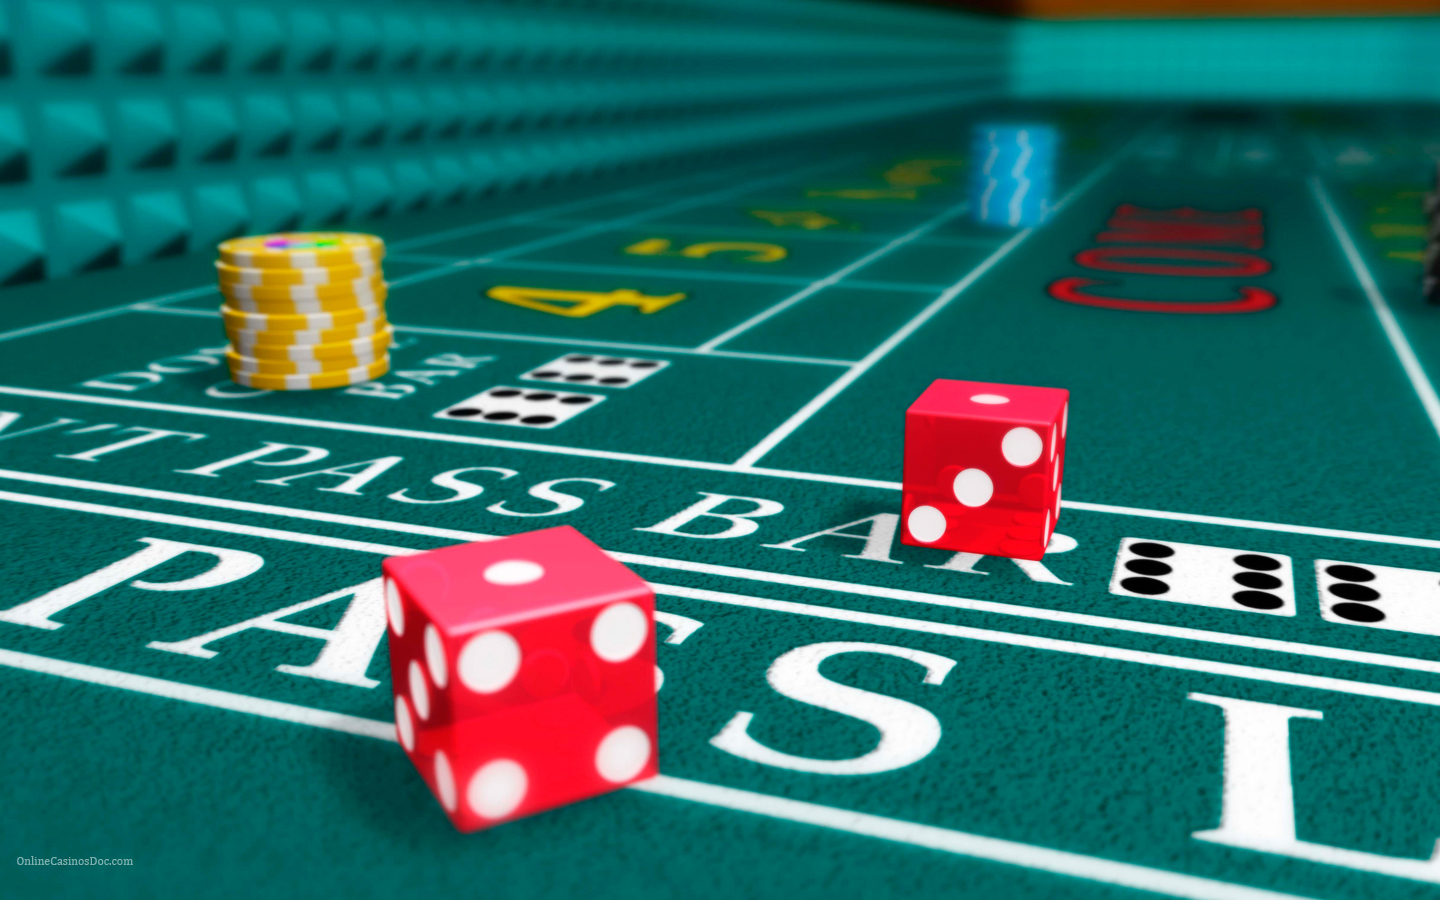 Find Out About Gambling In 8 Simple Steps